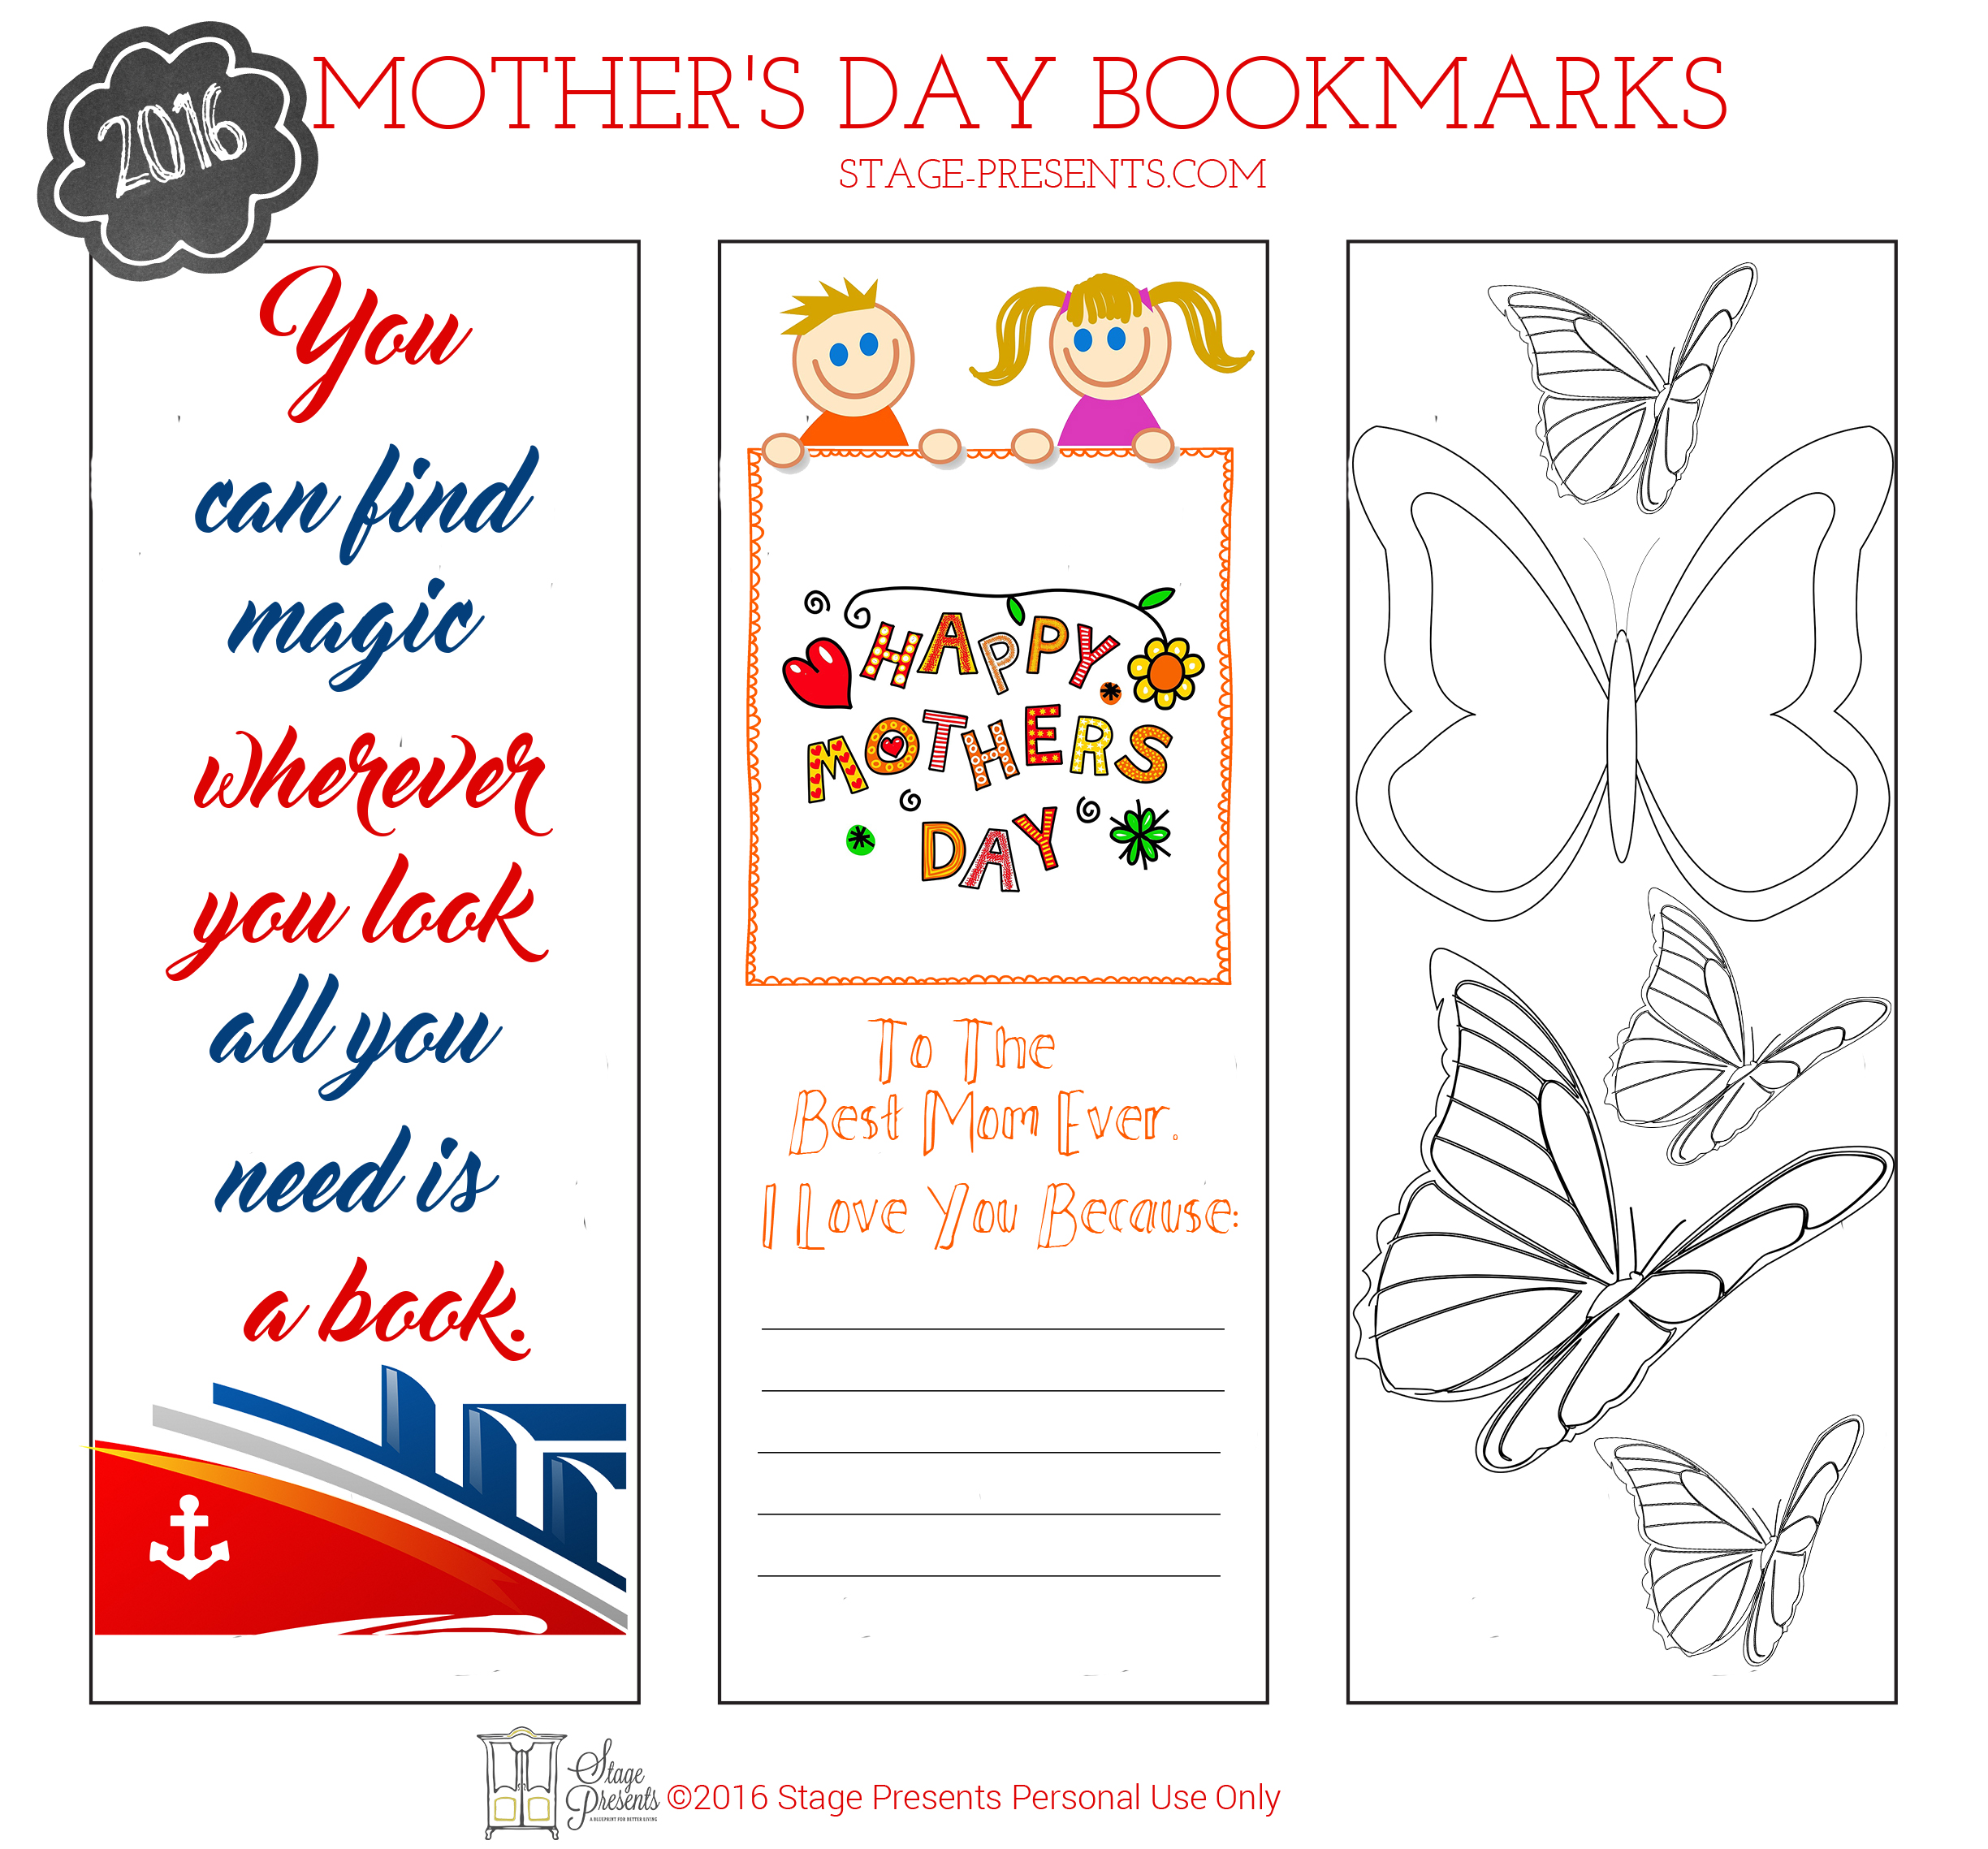 Mother's Day Bookmarks ©2016 Stage Presents